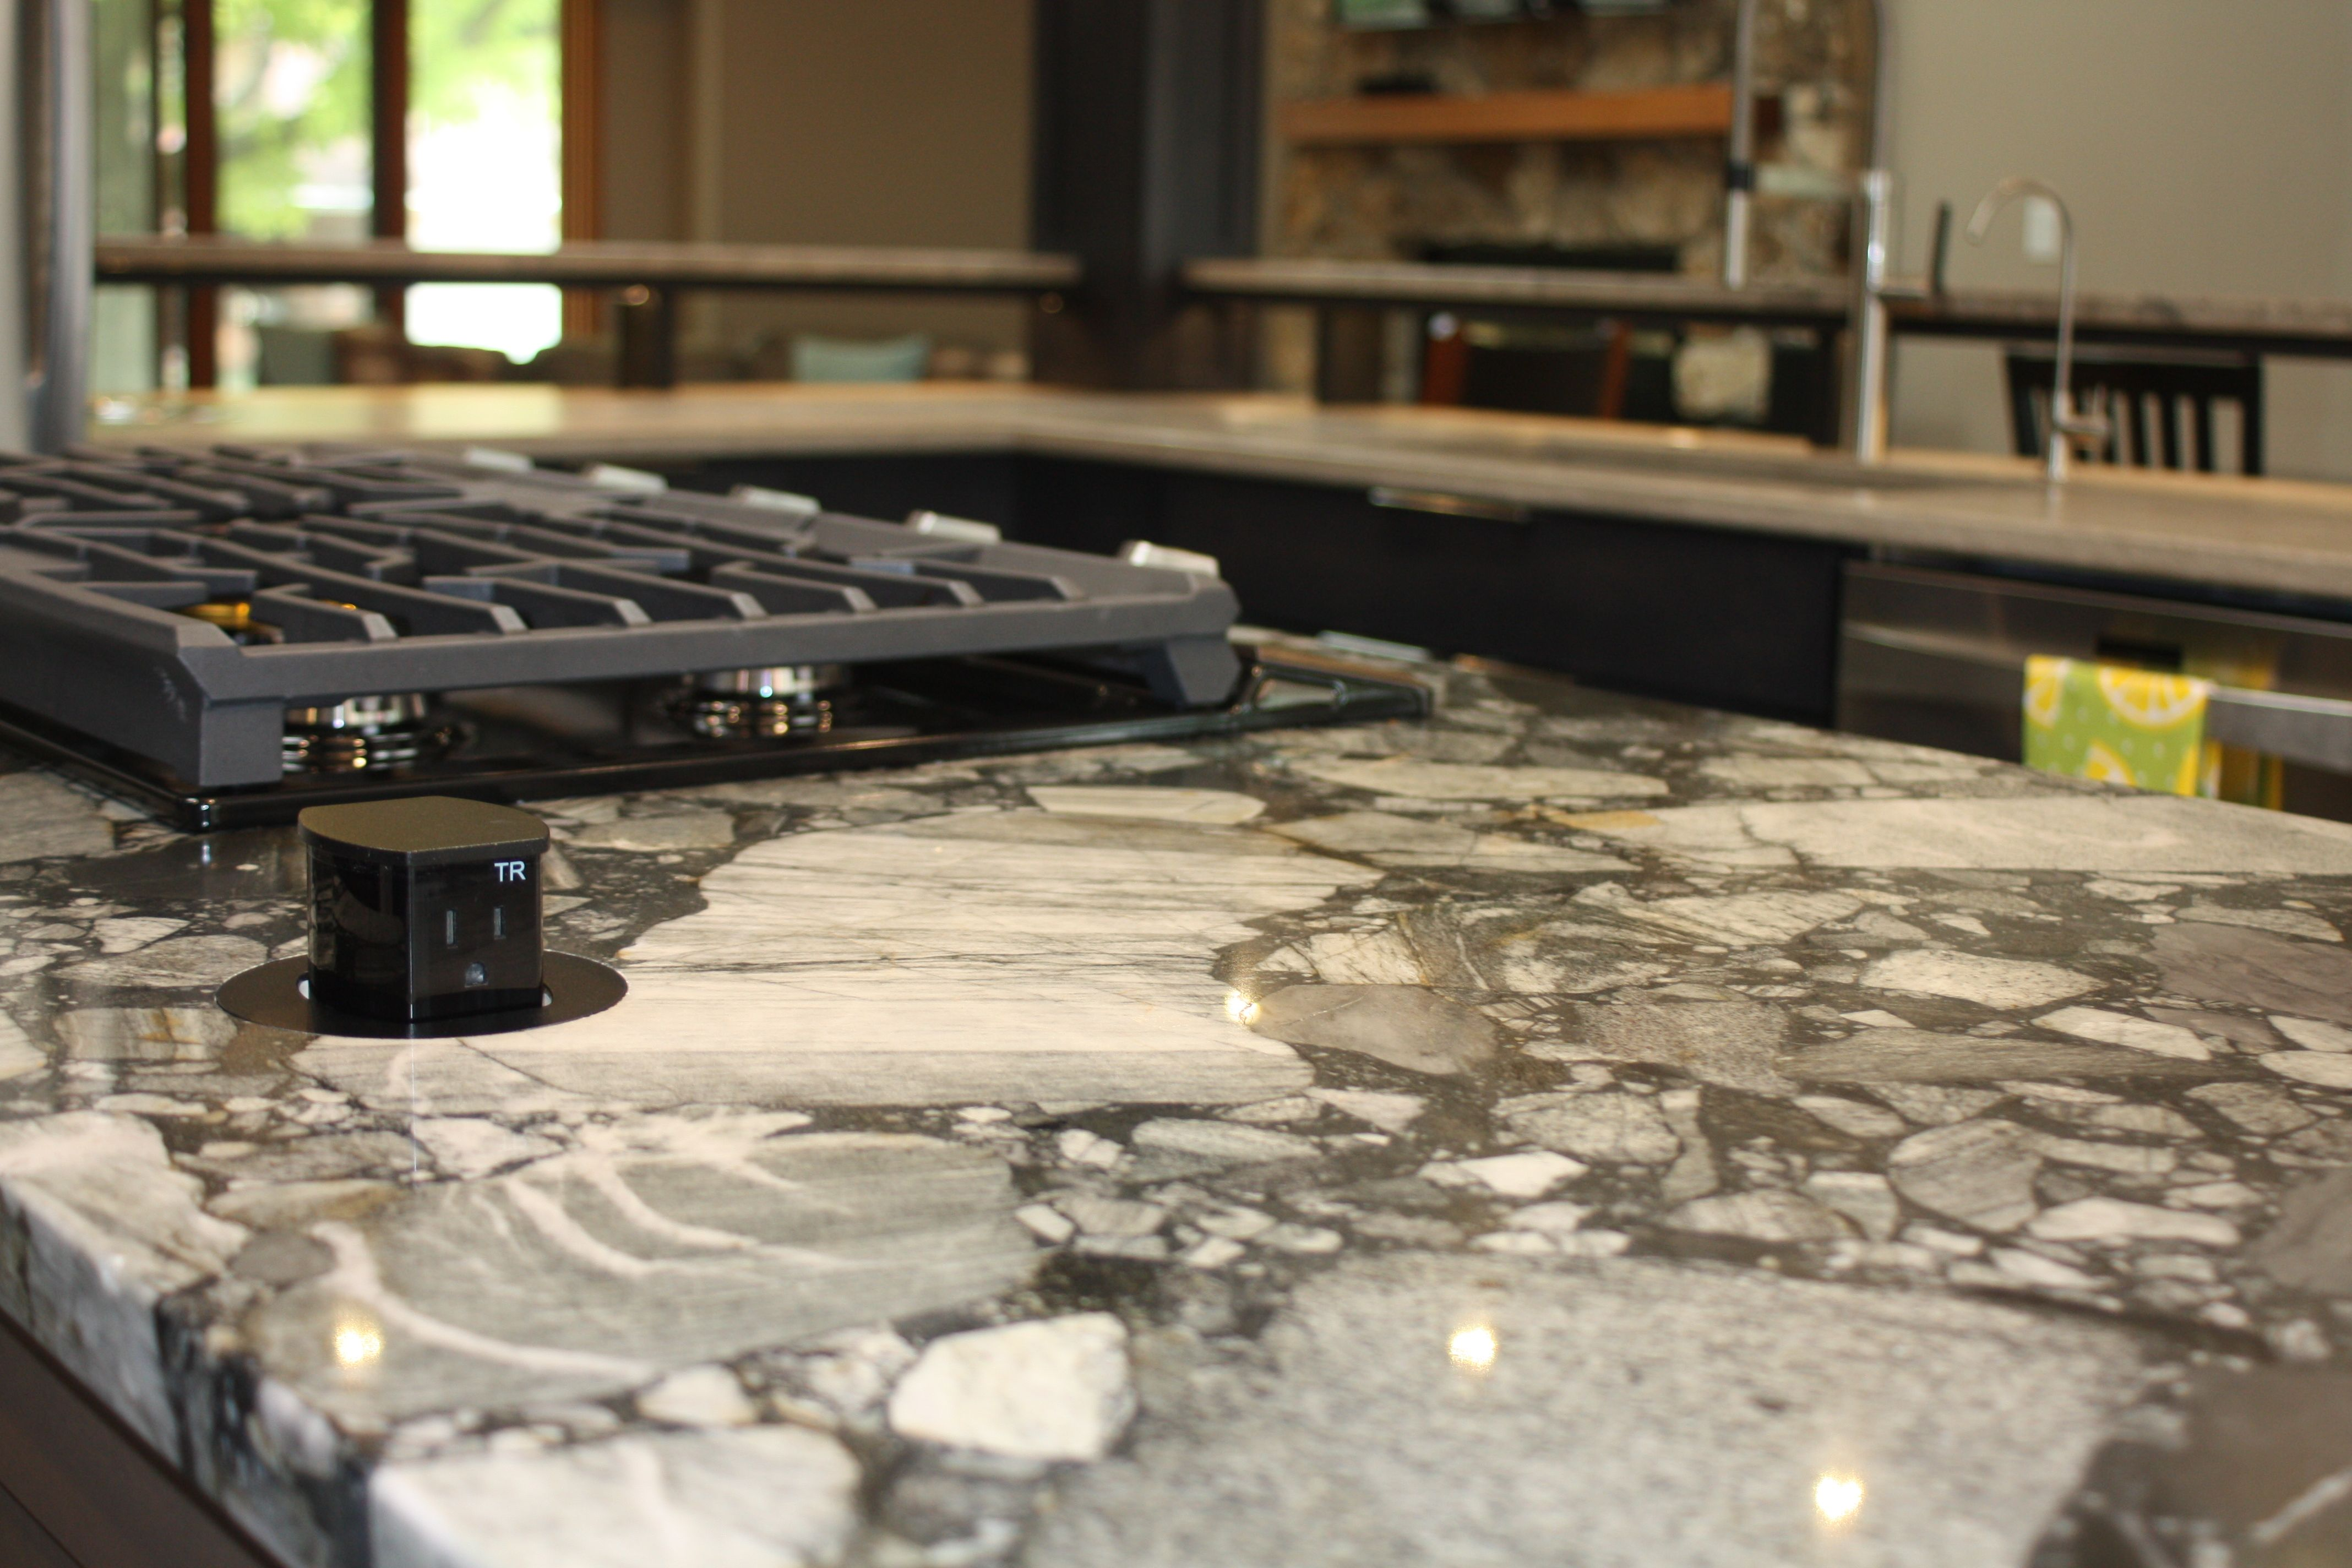 We Love Having The Pop Up Outlet On The Island Countertop